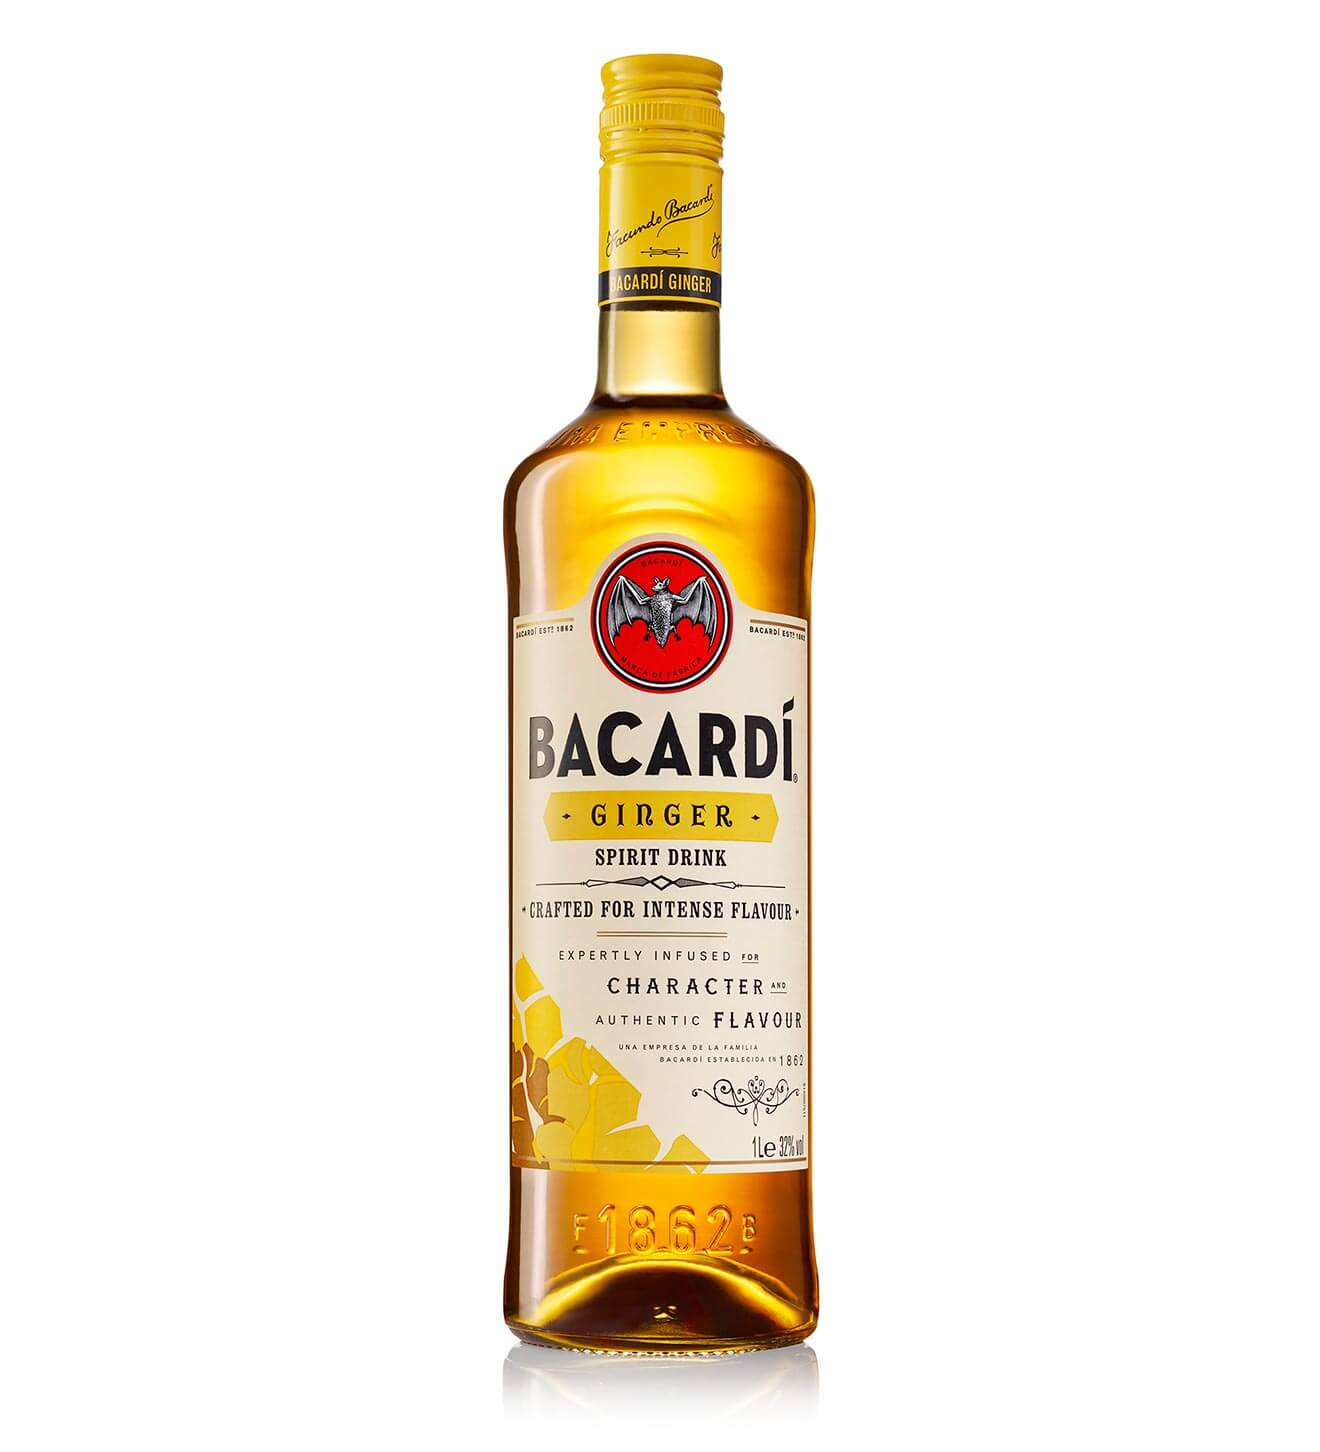 BACARDÍ Ginger, bottle on white